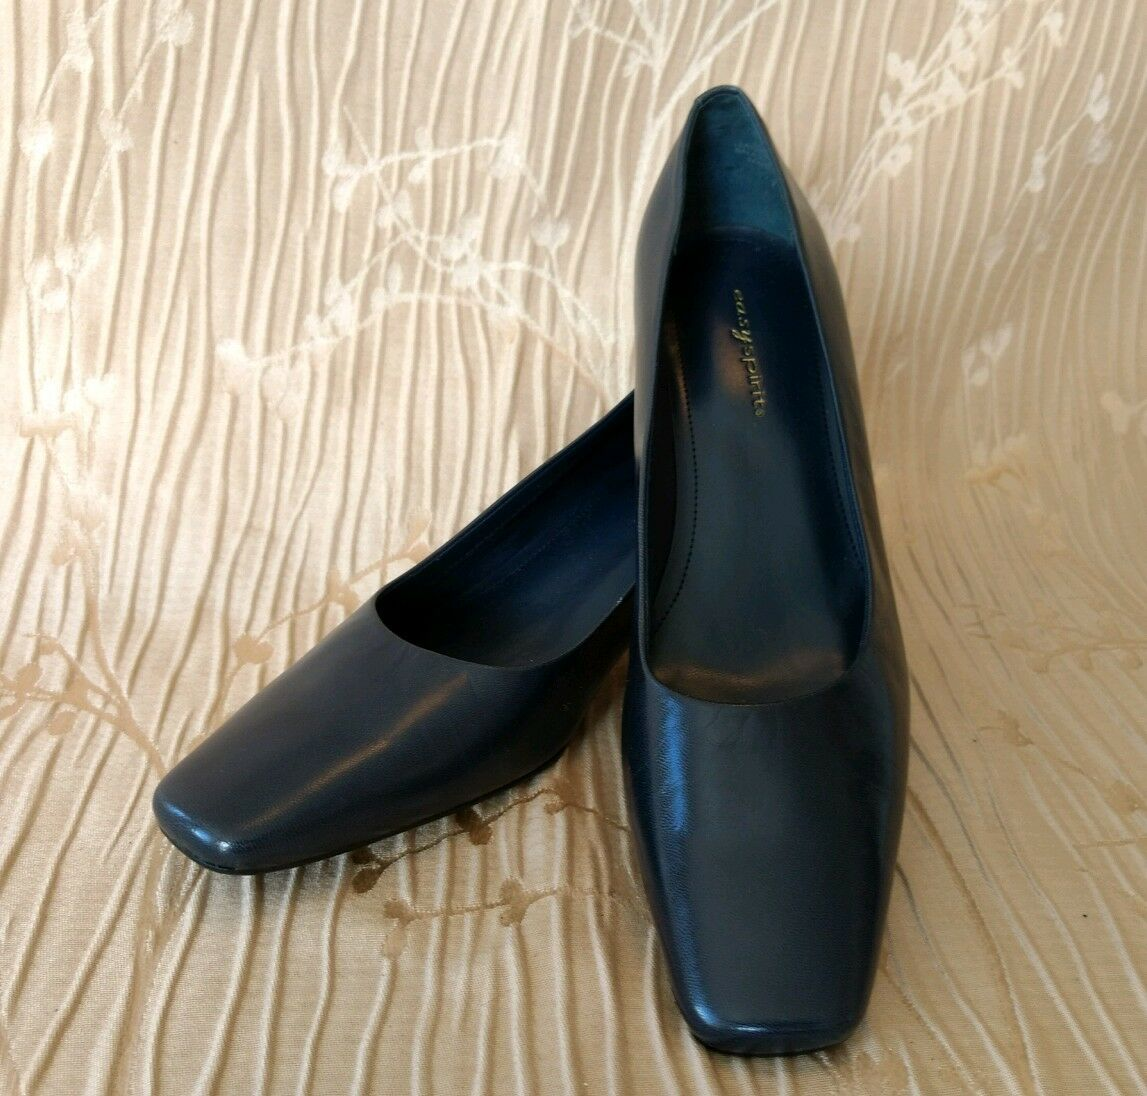 Easy Spirit Escaridad Medium Heel shoes Pumps Square Toes Navy size 7.5 M